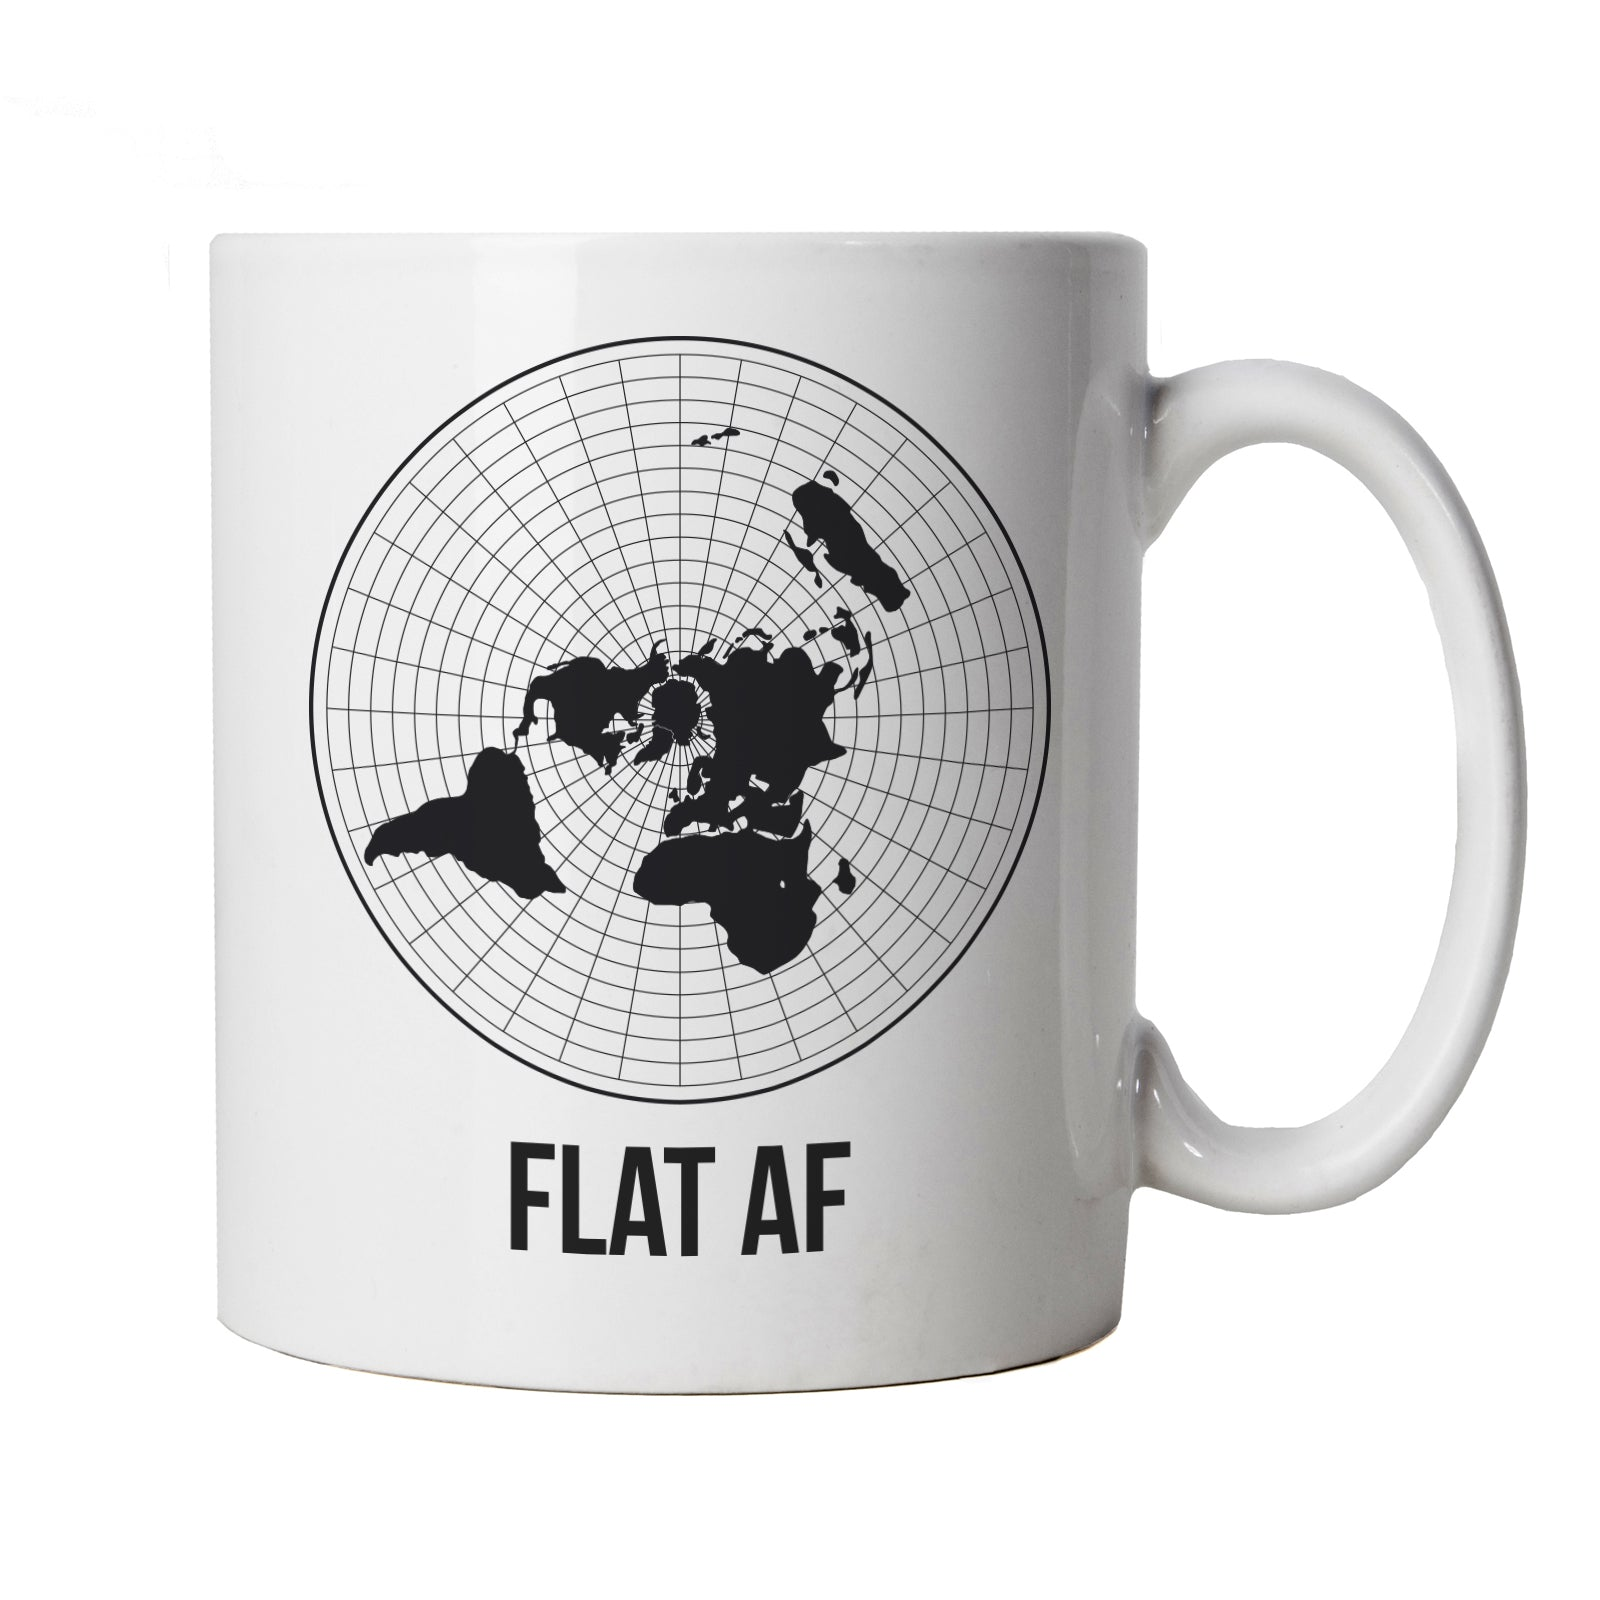 Flat AF, Mug | Flat Earth Society Funny Theory NASA Dark Energy Round Earther Globe Universal Disc Bedford Level Experiment Whirlpool Believer Behind The Curve TV Show | Gift Him Dad Her Mum